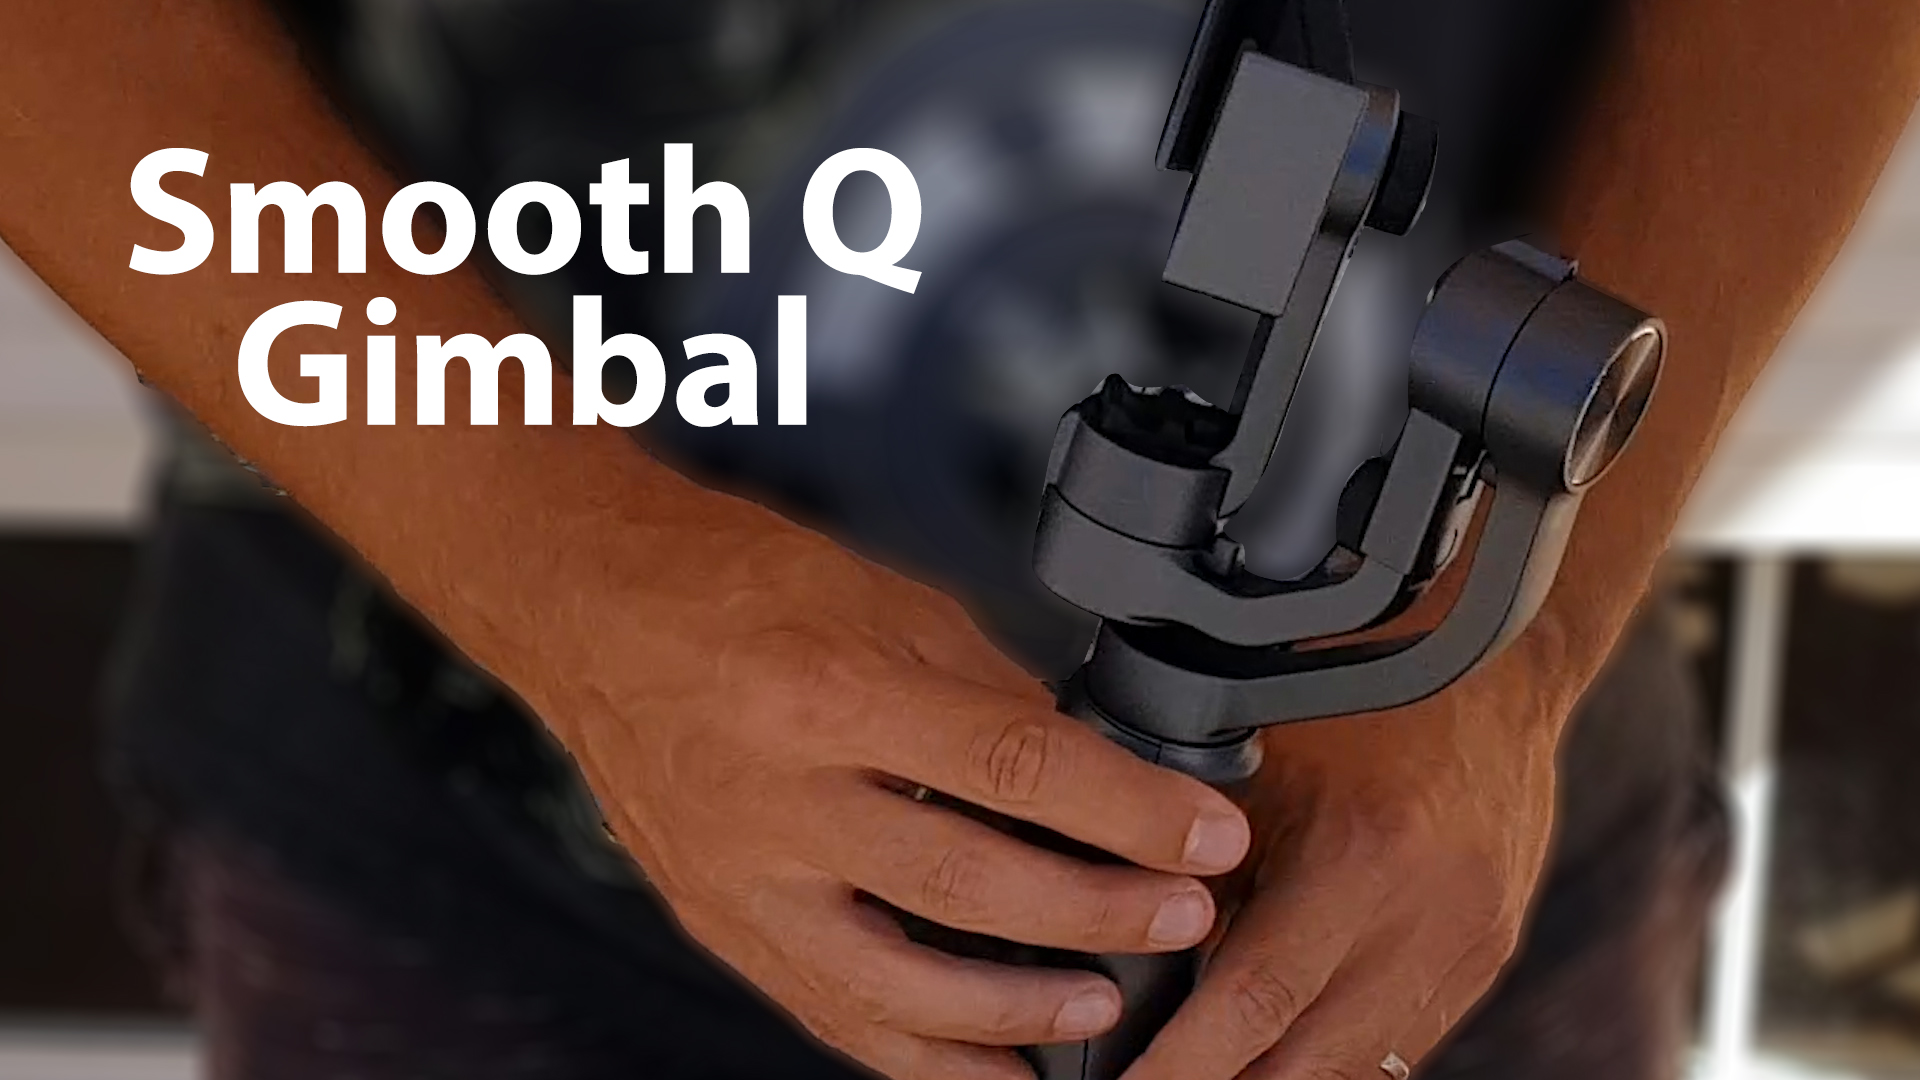 Unboxing Smooth Q Gimbal for my Samsung Galaxy S8